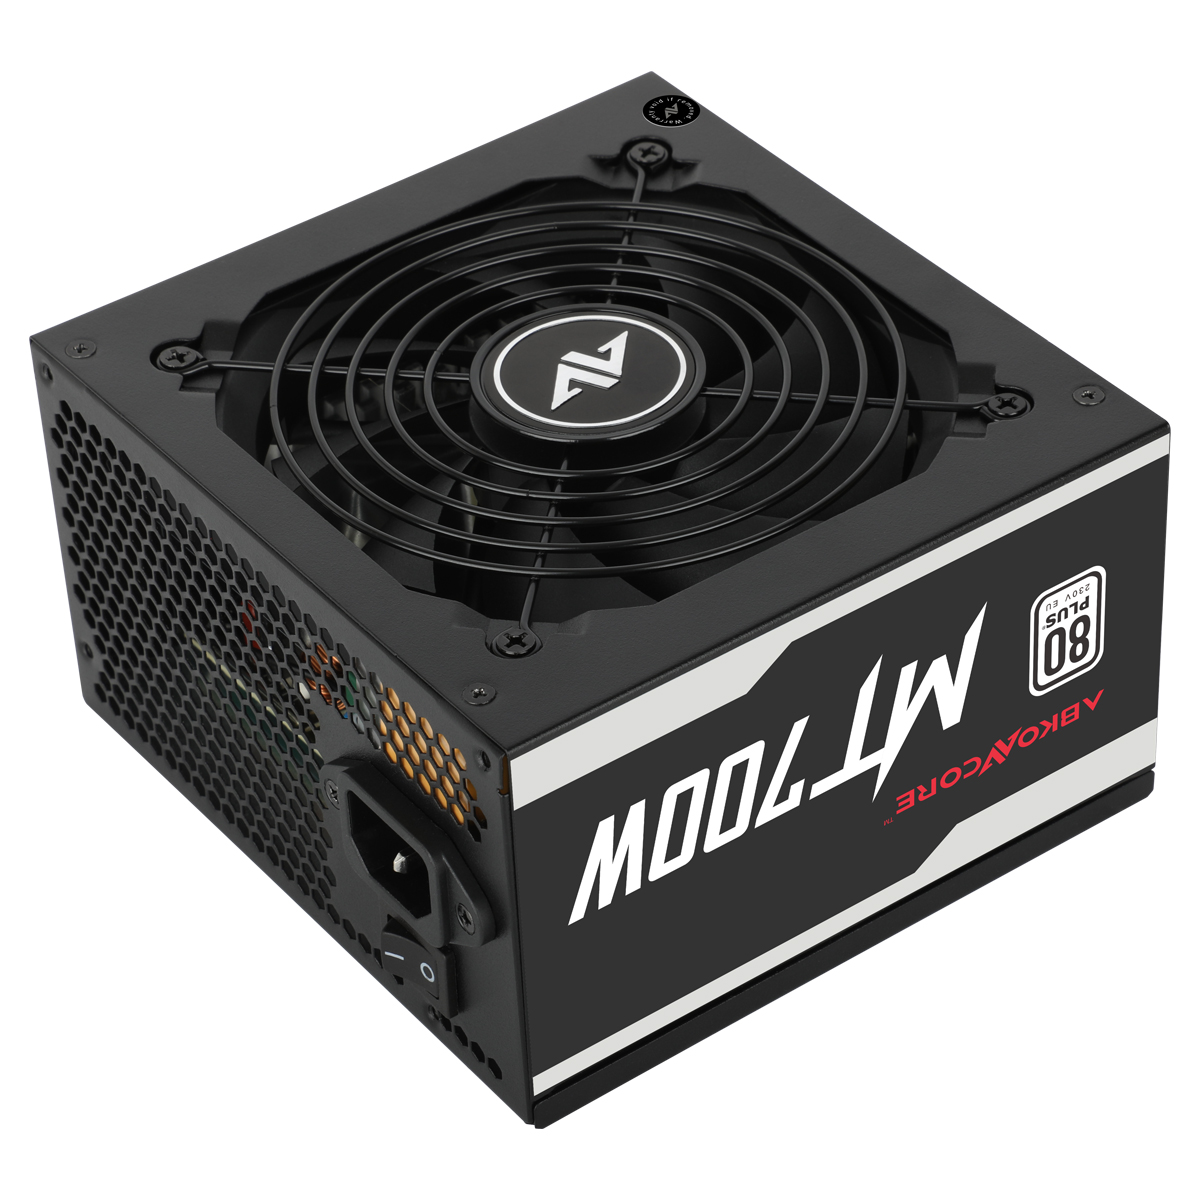 ABKONCORE PSU 700W MIGHTY